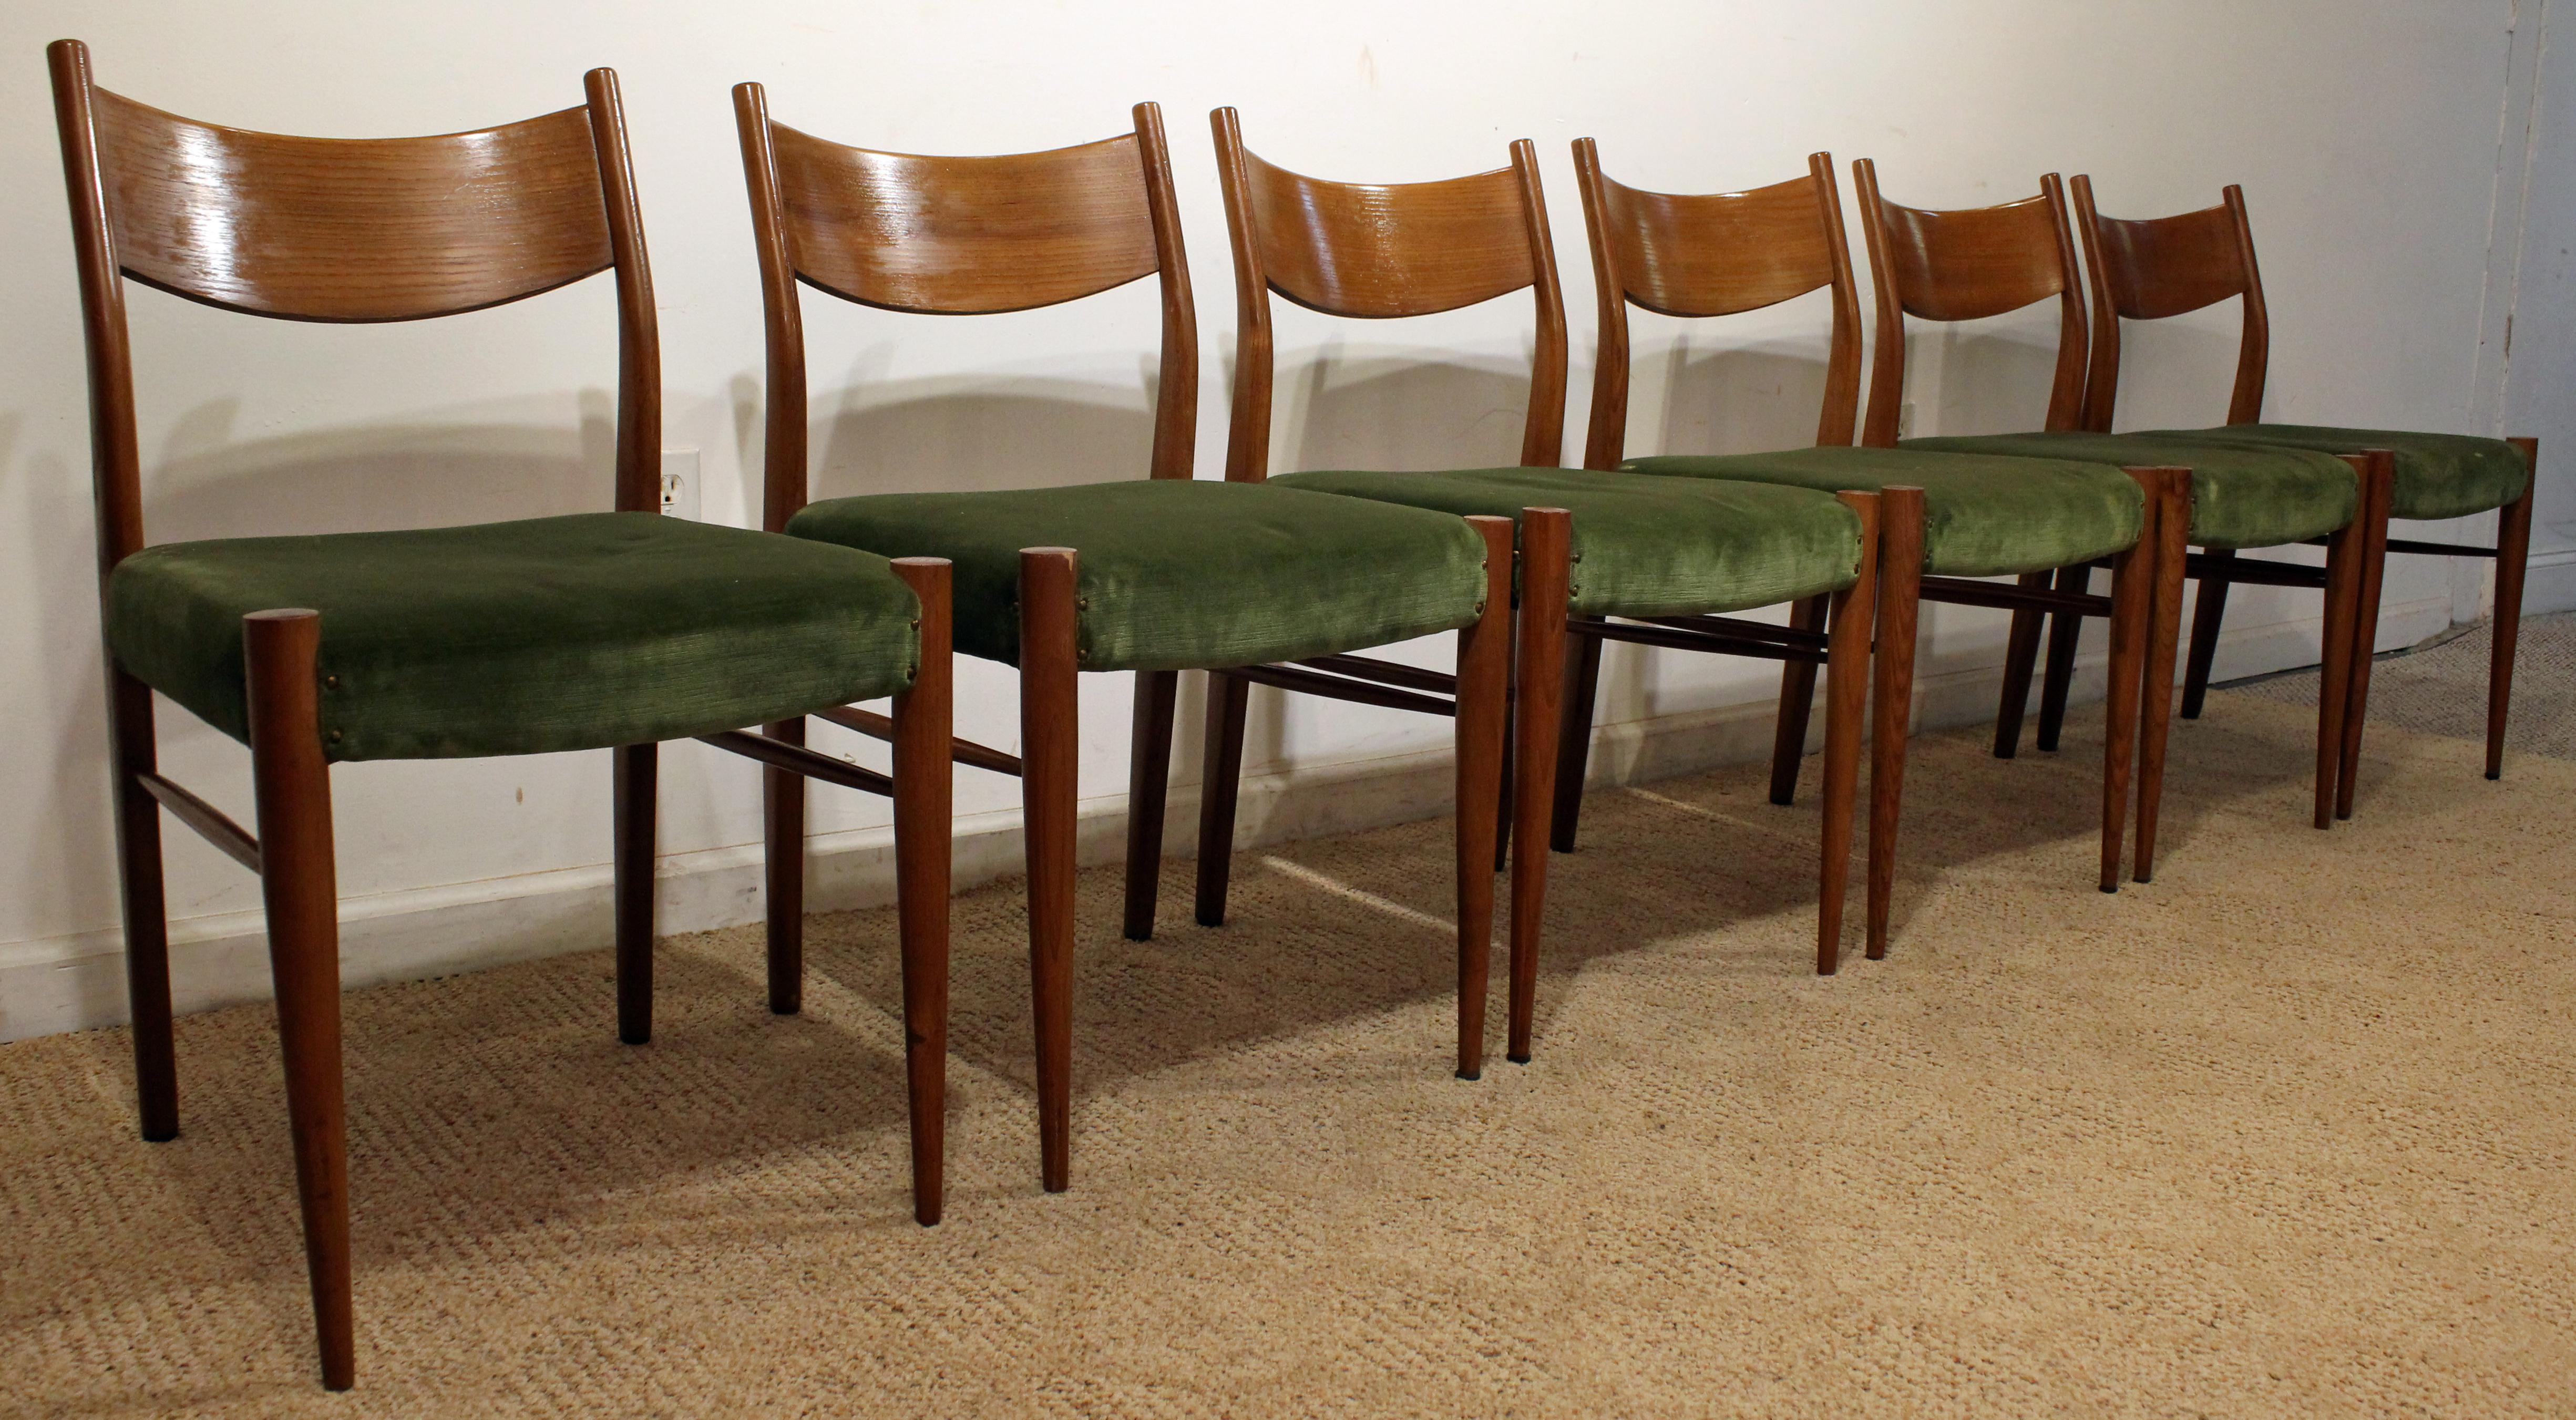 Set Of 6 Mid Century Danish Modern Teak Curved Back Dining Chairs   Image 2